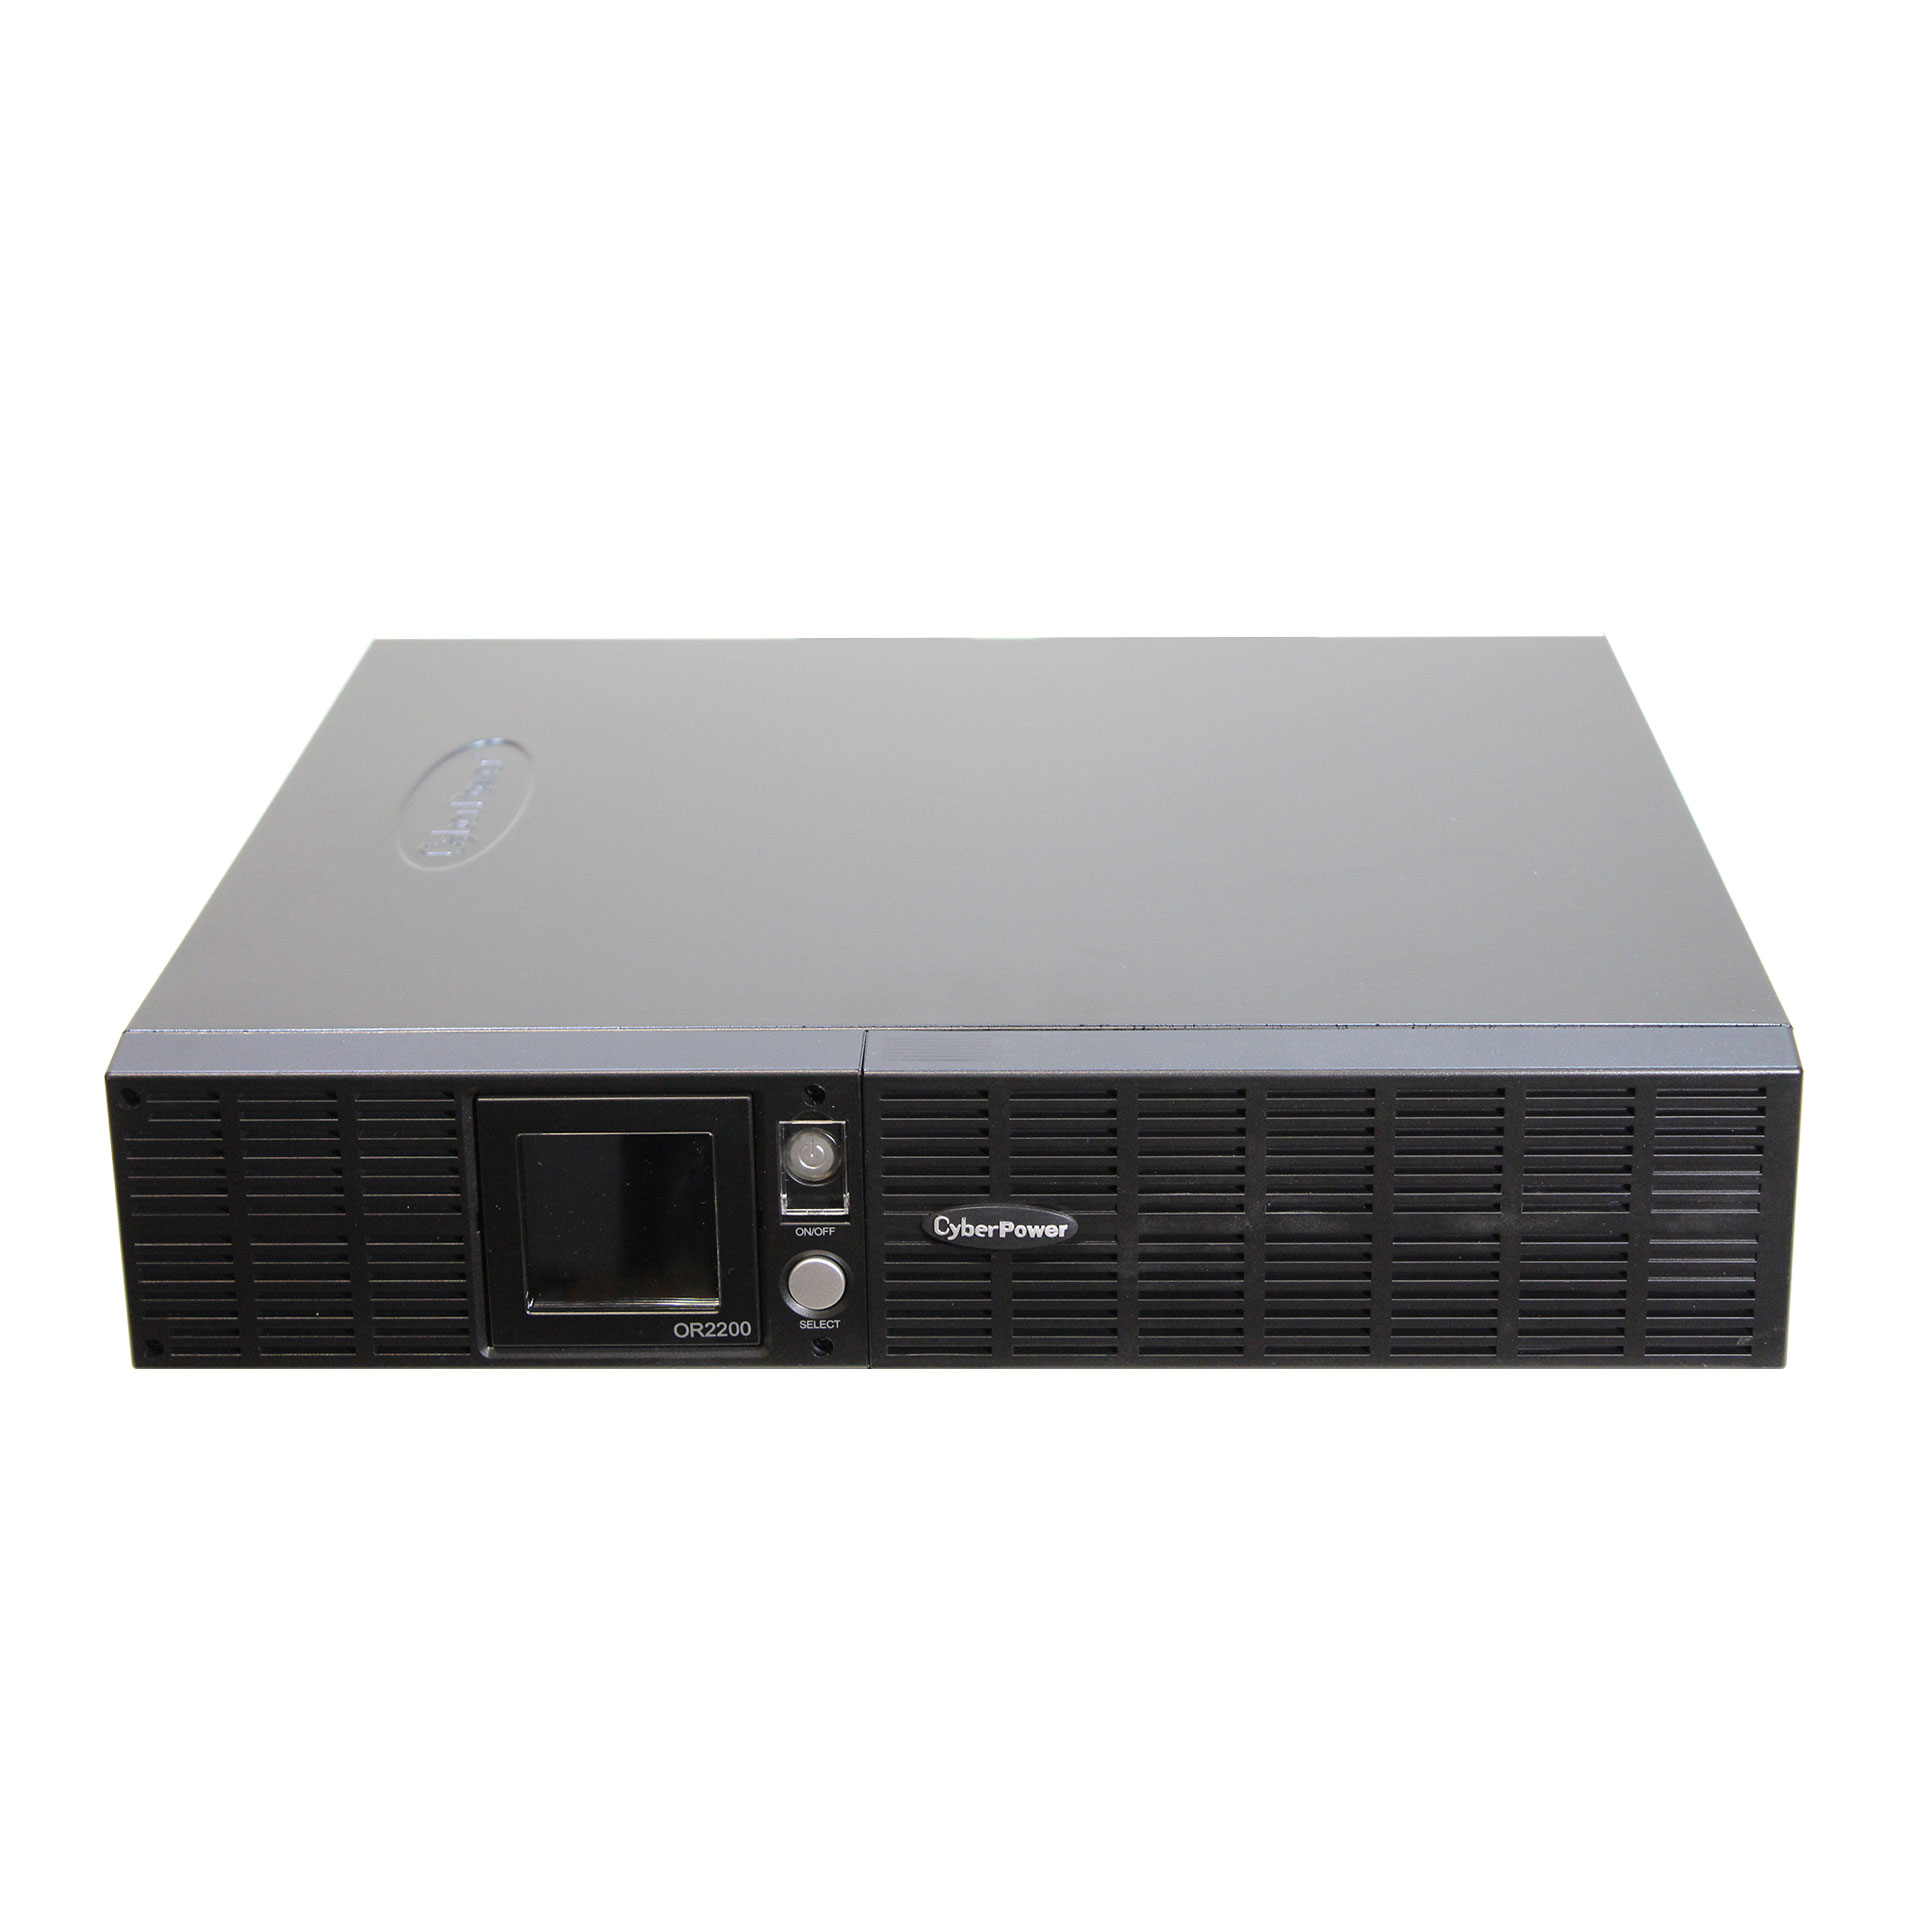 CyberPower Smart App Intelligent LCD OR2200LCDRT2U UPS 1320W#